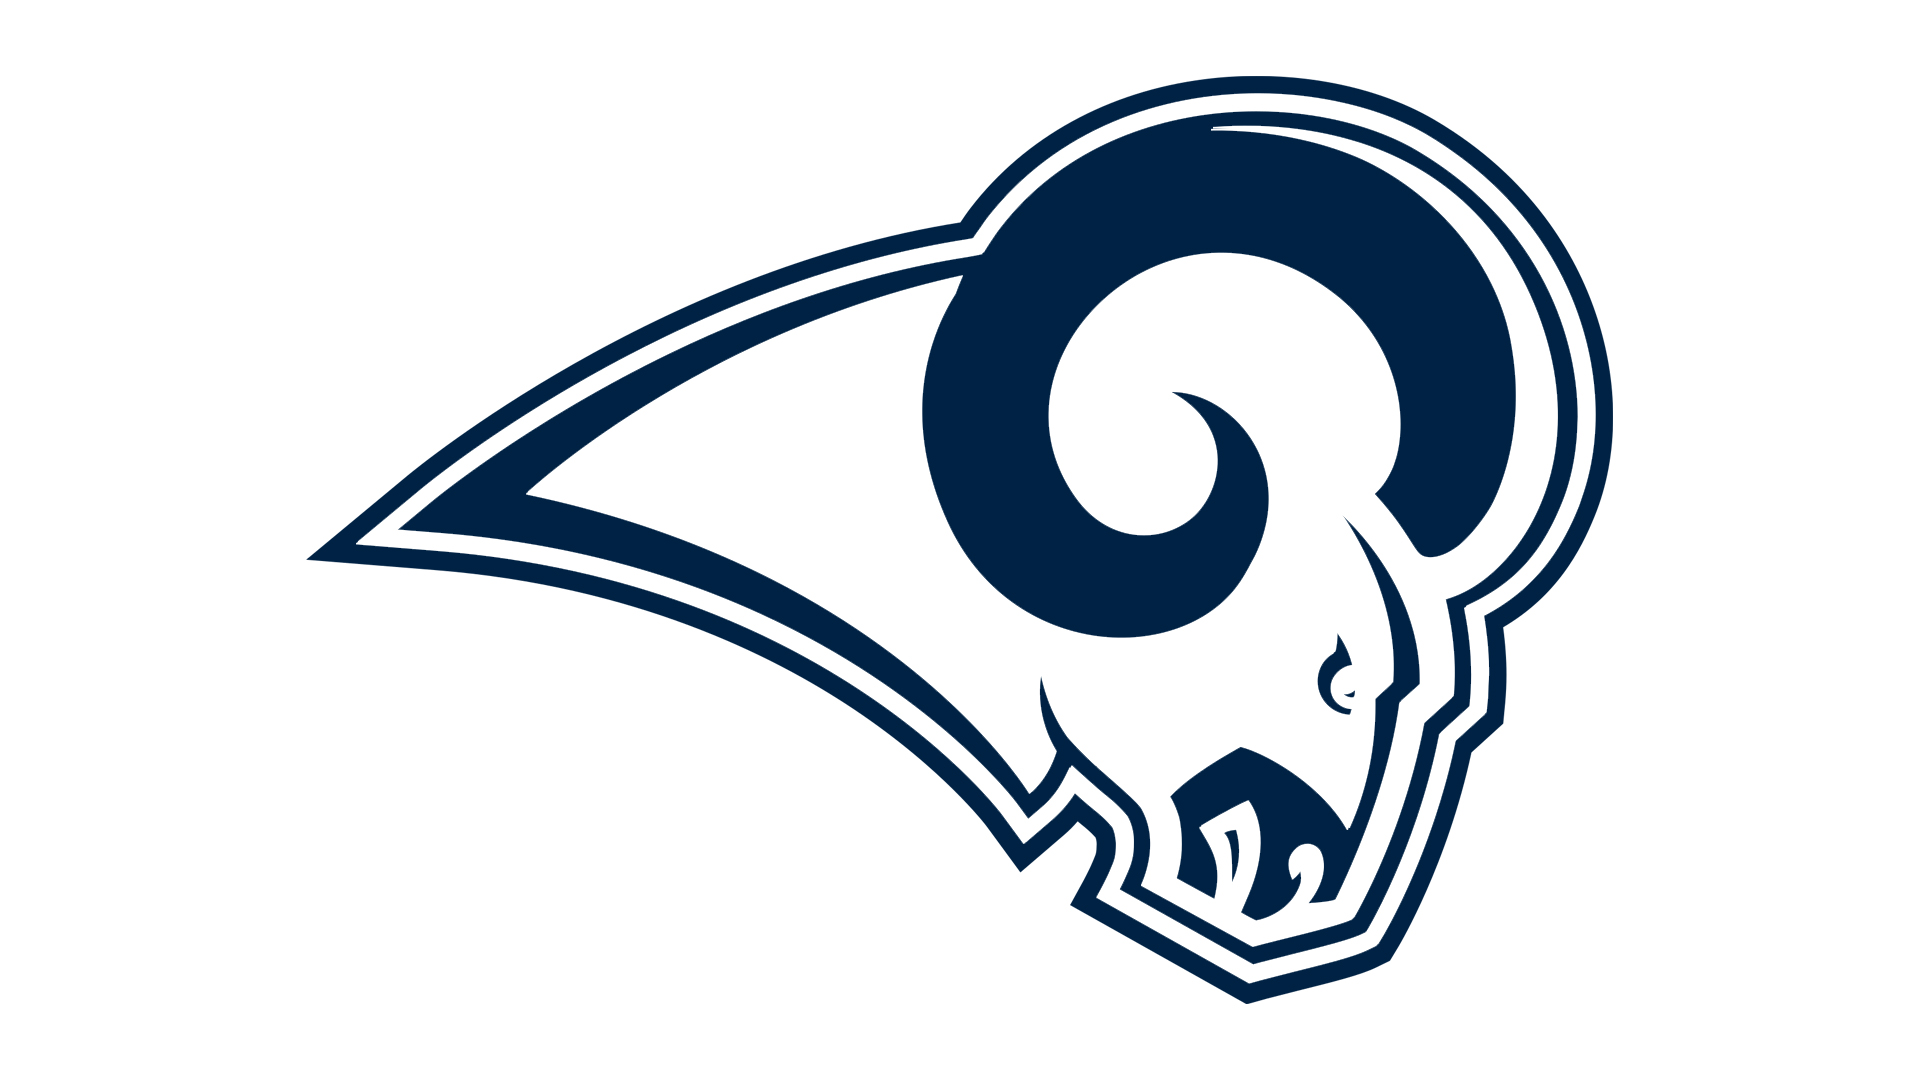 Meaning Los Angeles Rams logo and symbol.